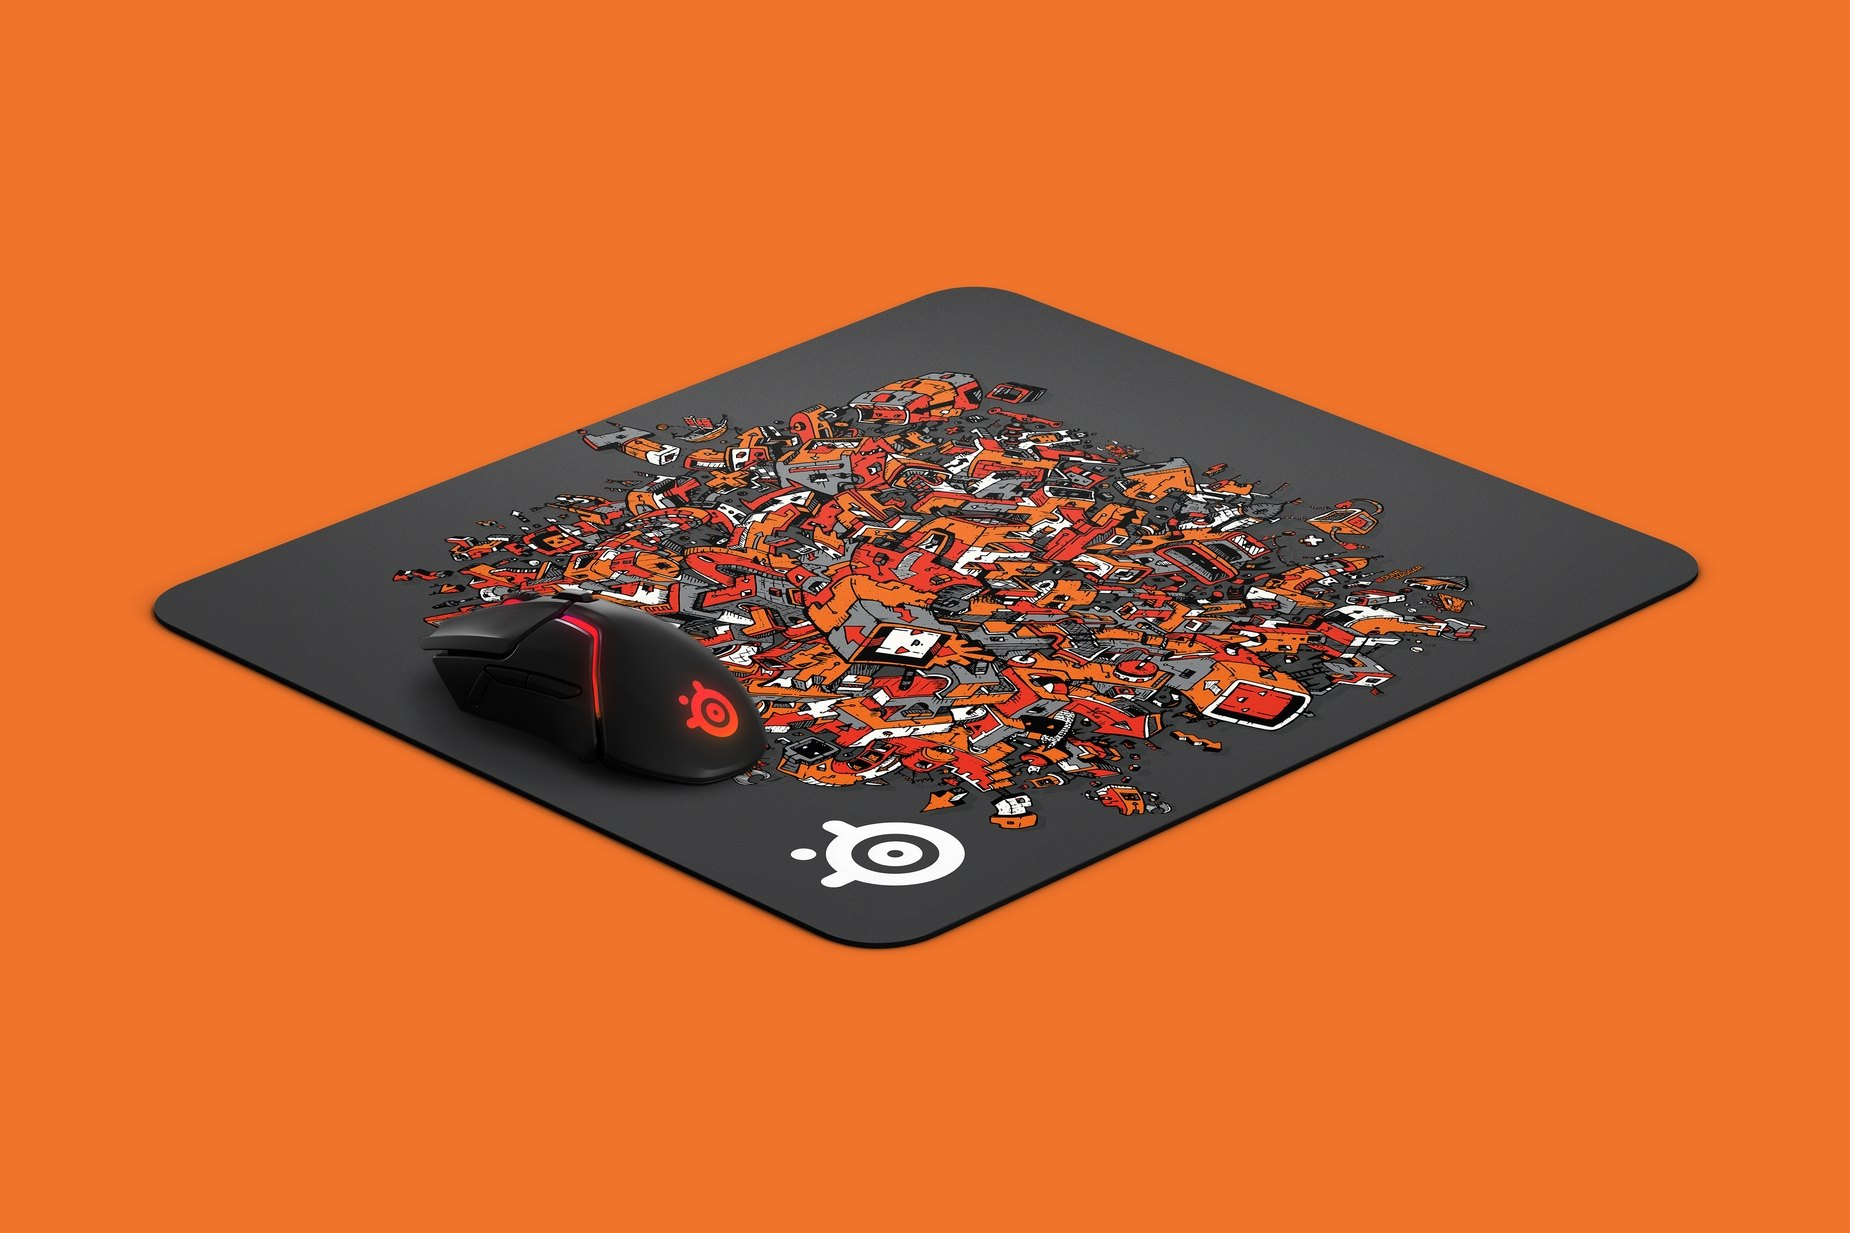 QcK Large artist series mousepad featuring a steelseries mouse for size comparison